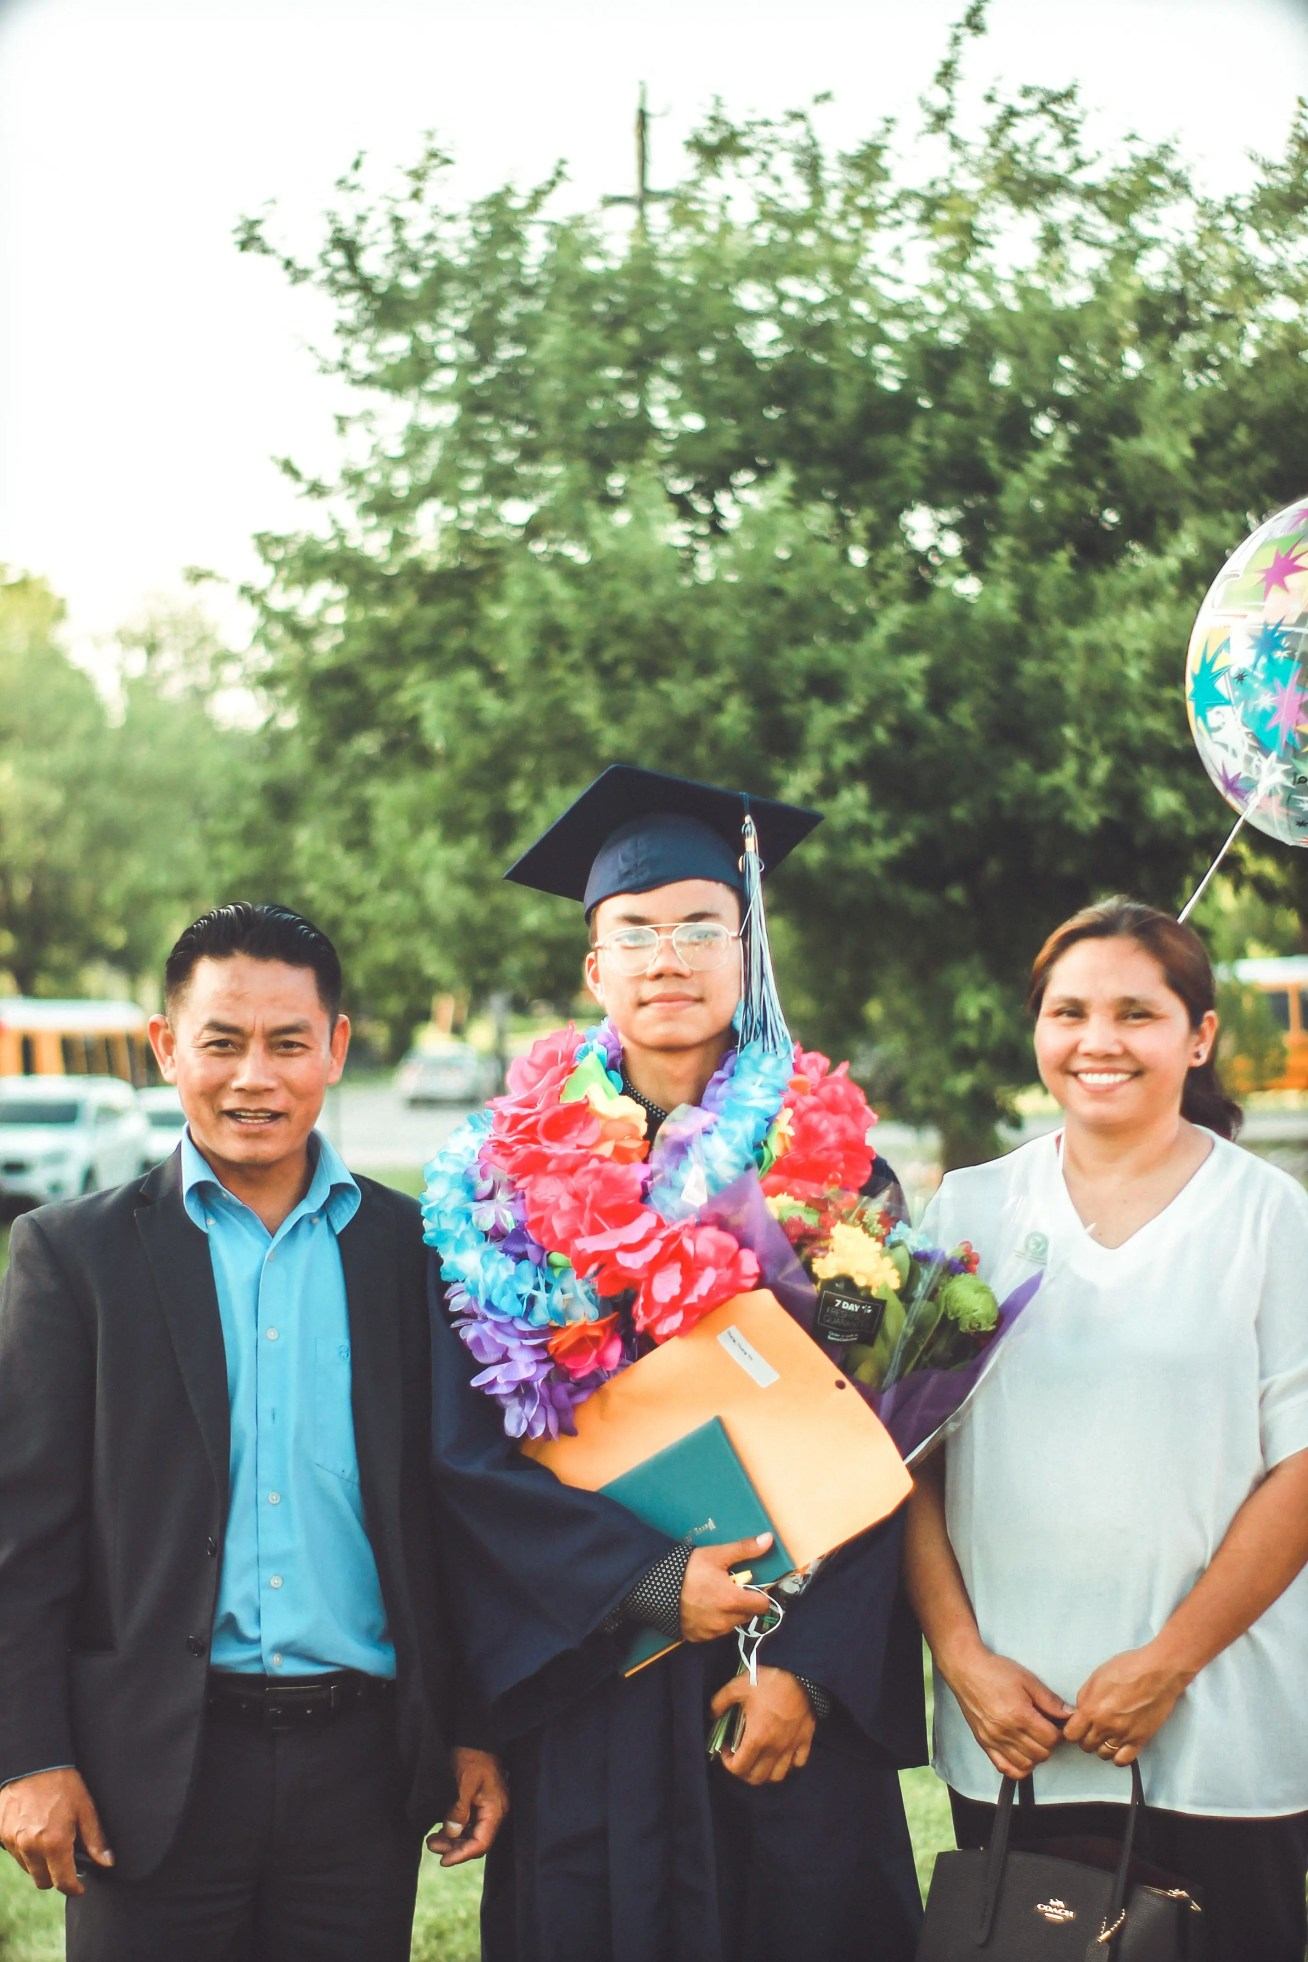 https://www.pexels.com/photo/photo-of-a-man-wearing-academic-gown-together-with-his-parents-2513989/